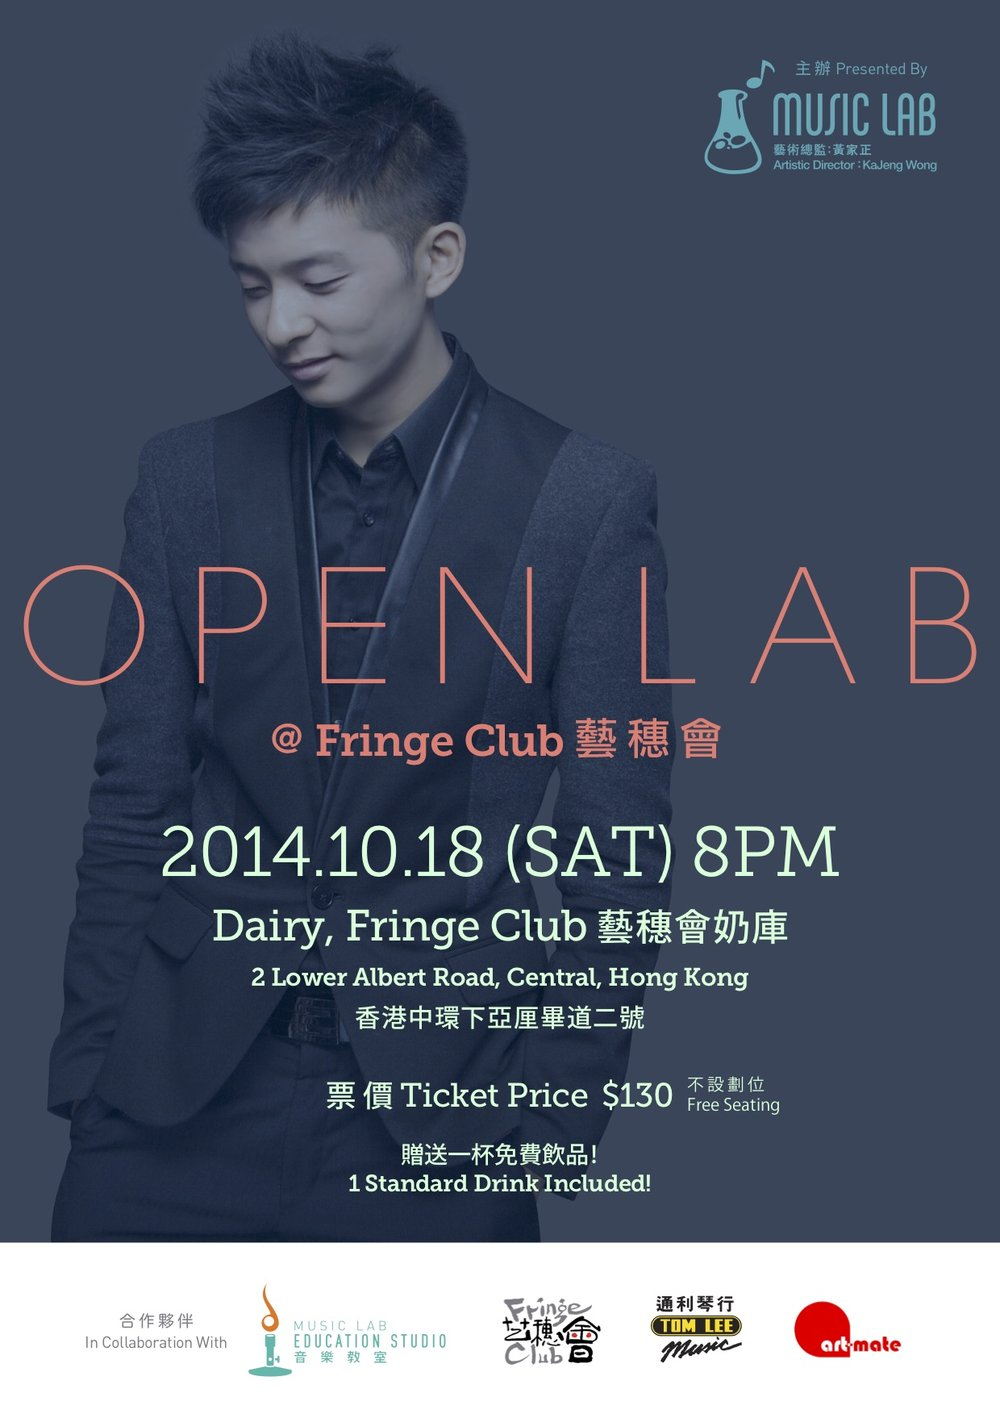 Open Lab @ Fringe Club - Open Lab now in Fringe Club!From Baroque to Jazz, pianist KaJeng Wong will perform and share about music with you, with a drink in your hands!